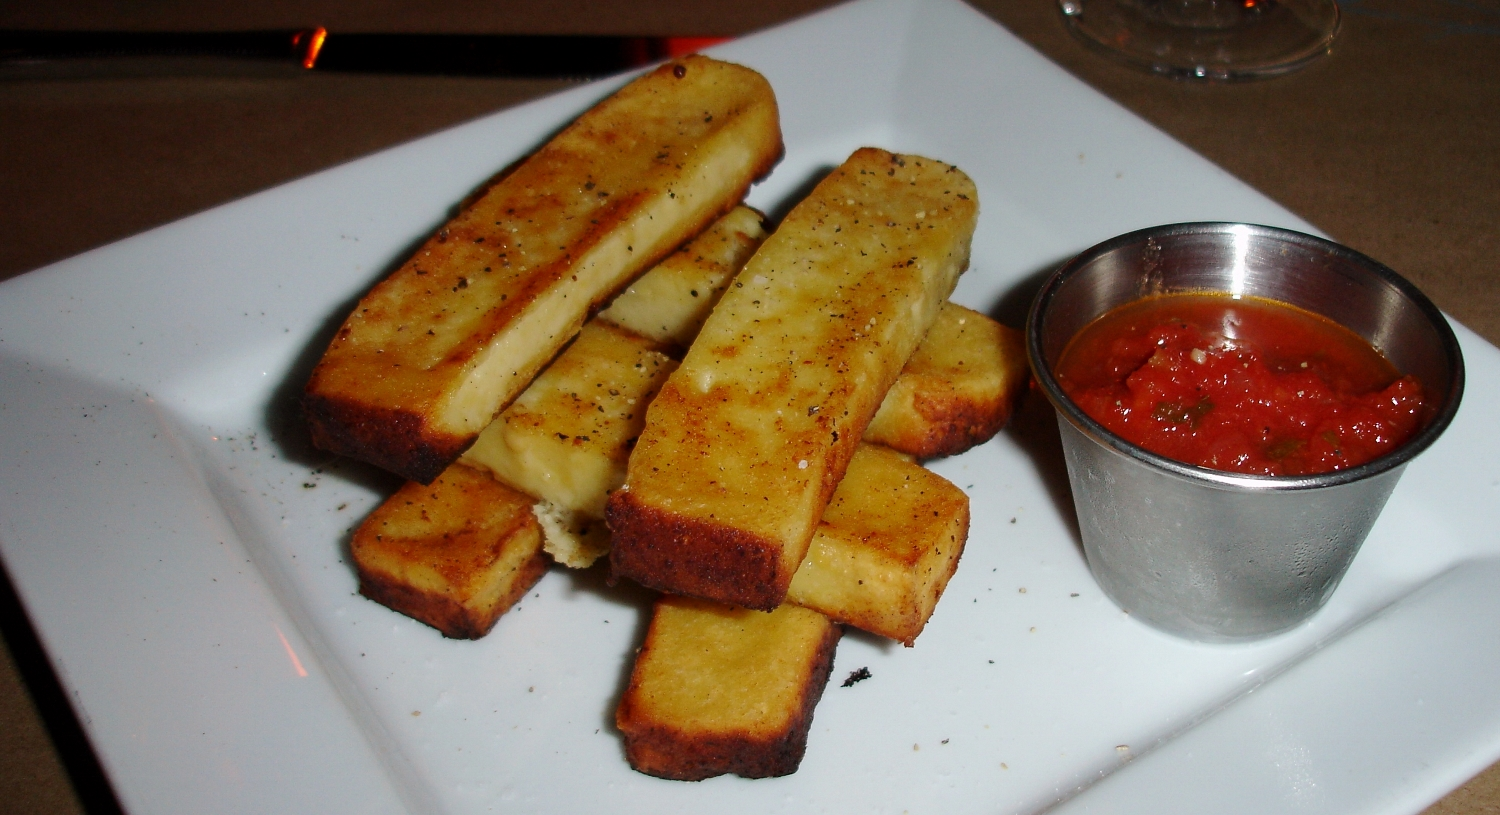 A starter of fried panelle (chickpea polenta) with fresh marinara would have been fine had they not been badly burned on the bottom. We're sure they'd have been replaced had we brought it to the attention of the house but we just didn't feel like making a fuss.